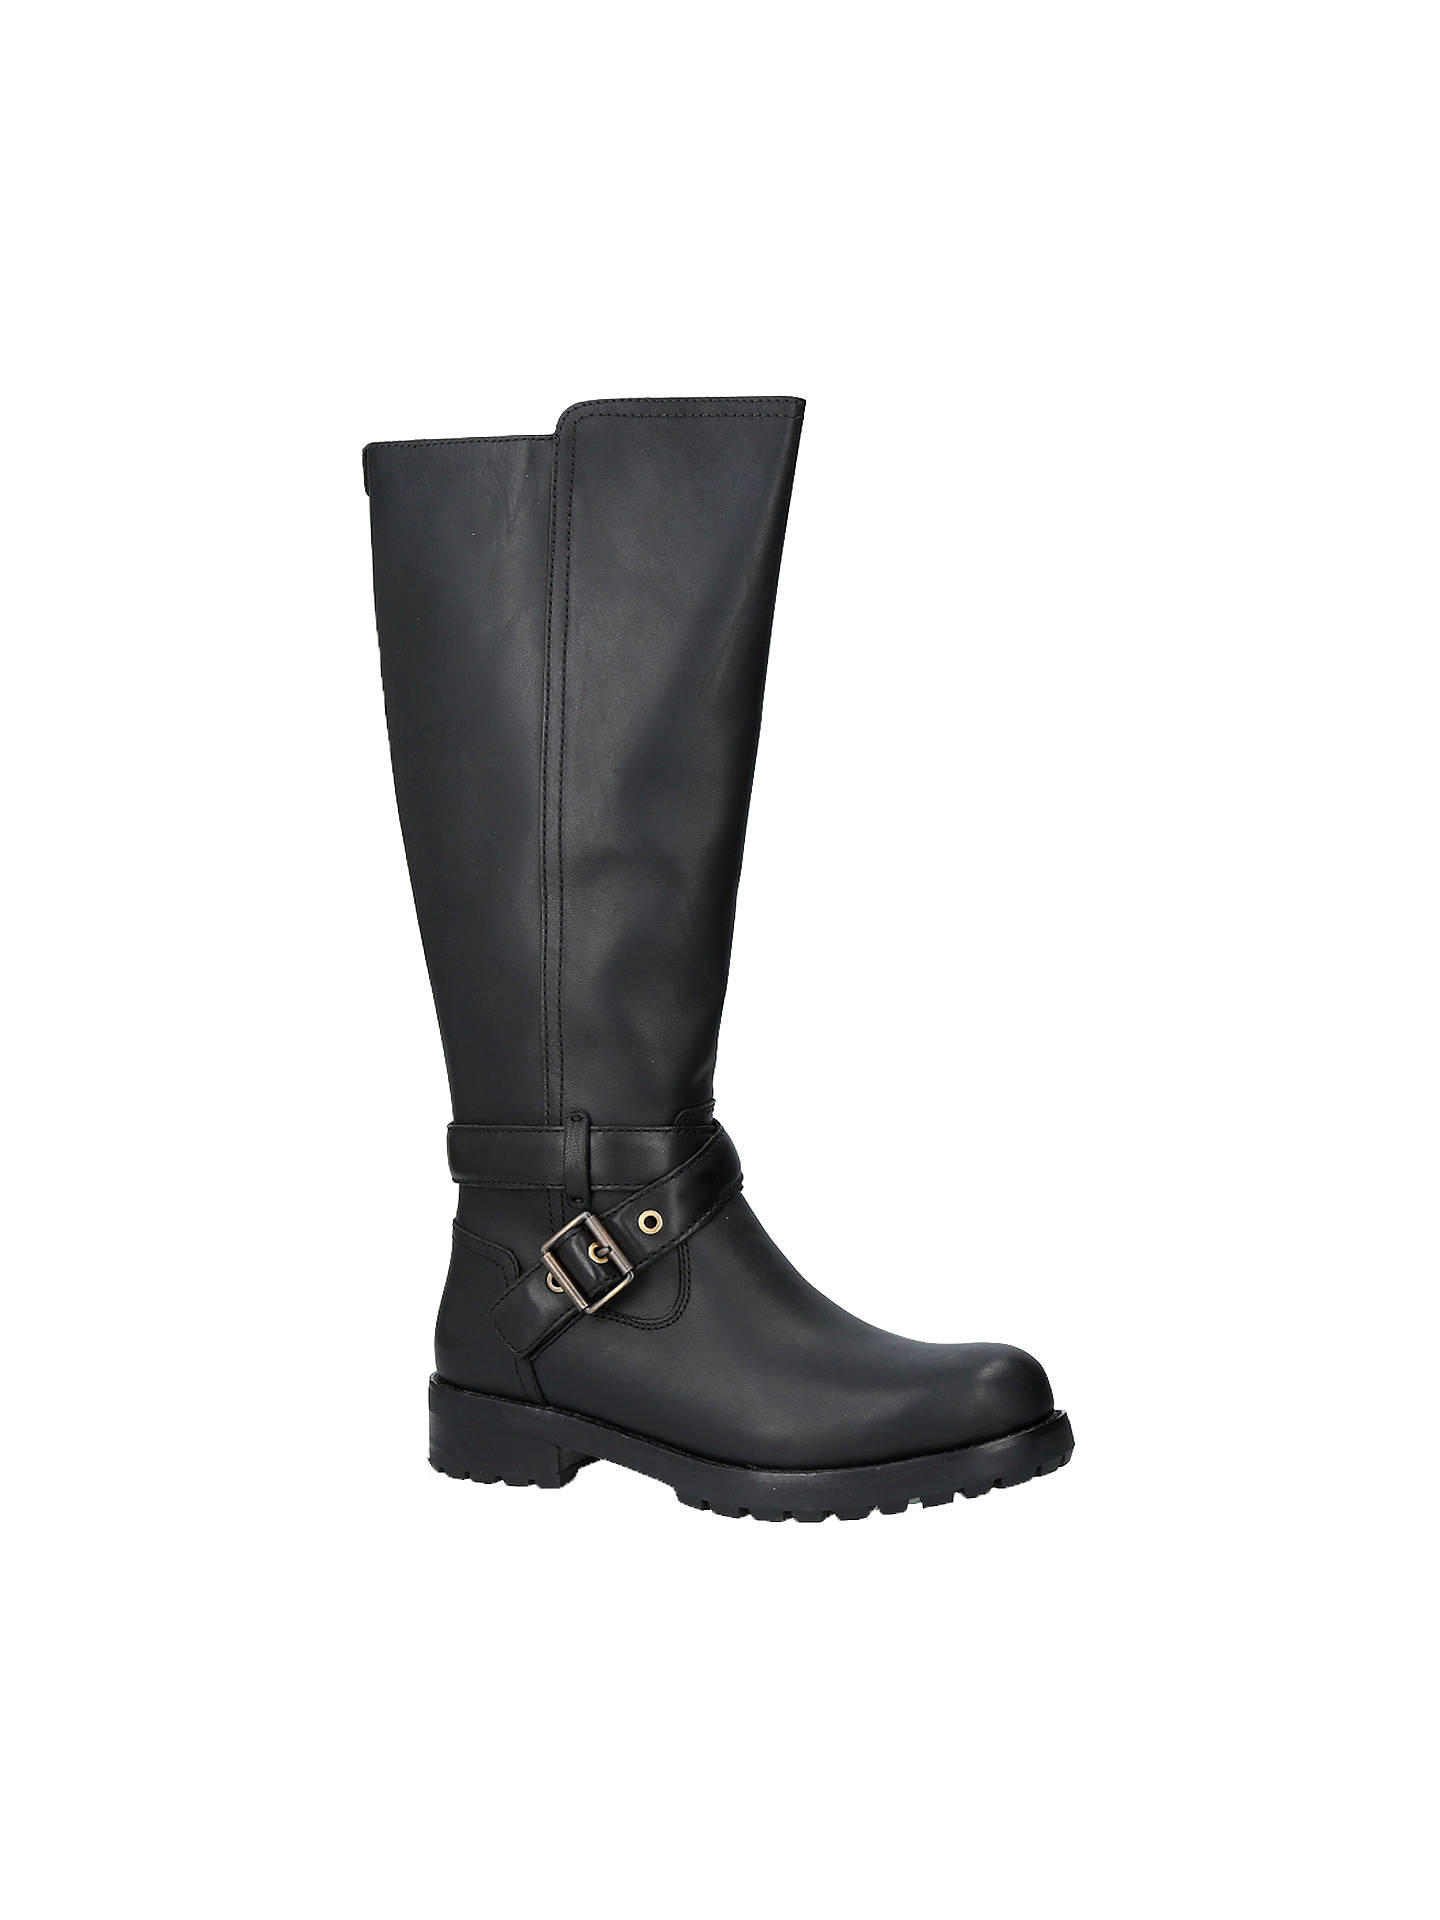 59aa8c82919 UGG Harington Knee High Boots, Black Leather at John Lewis & Partners